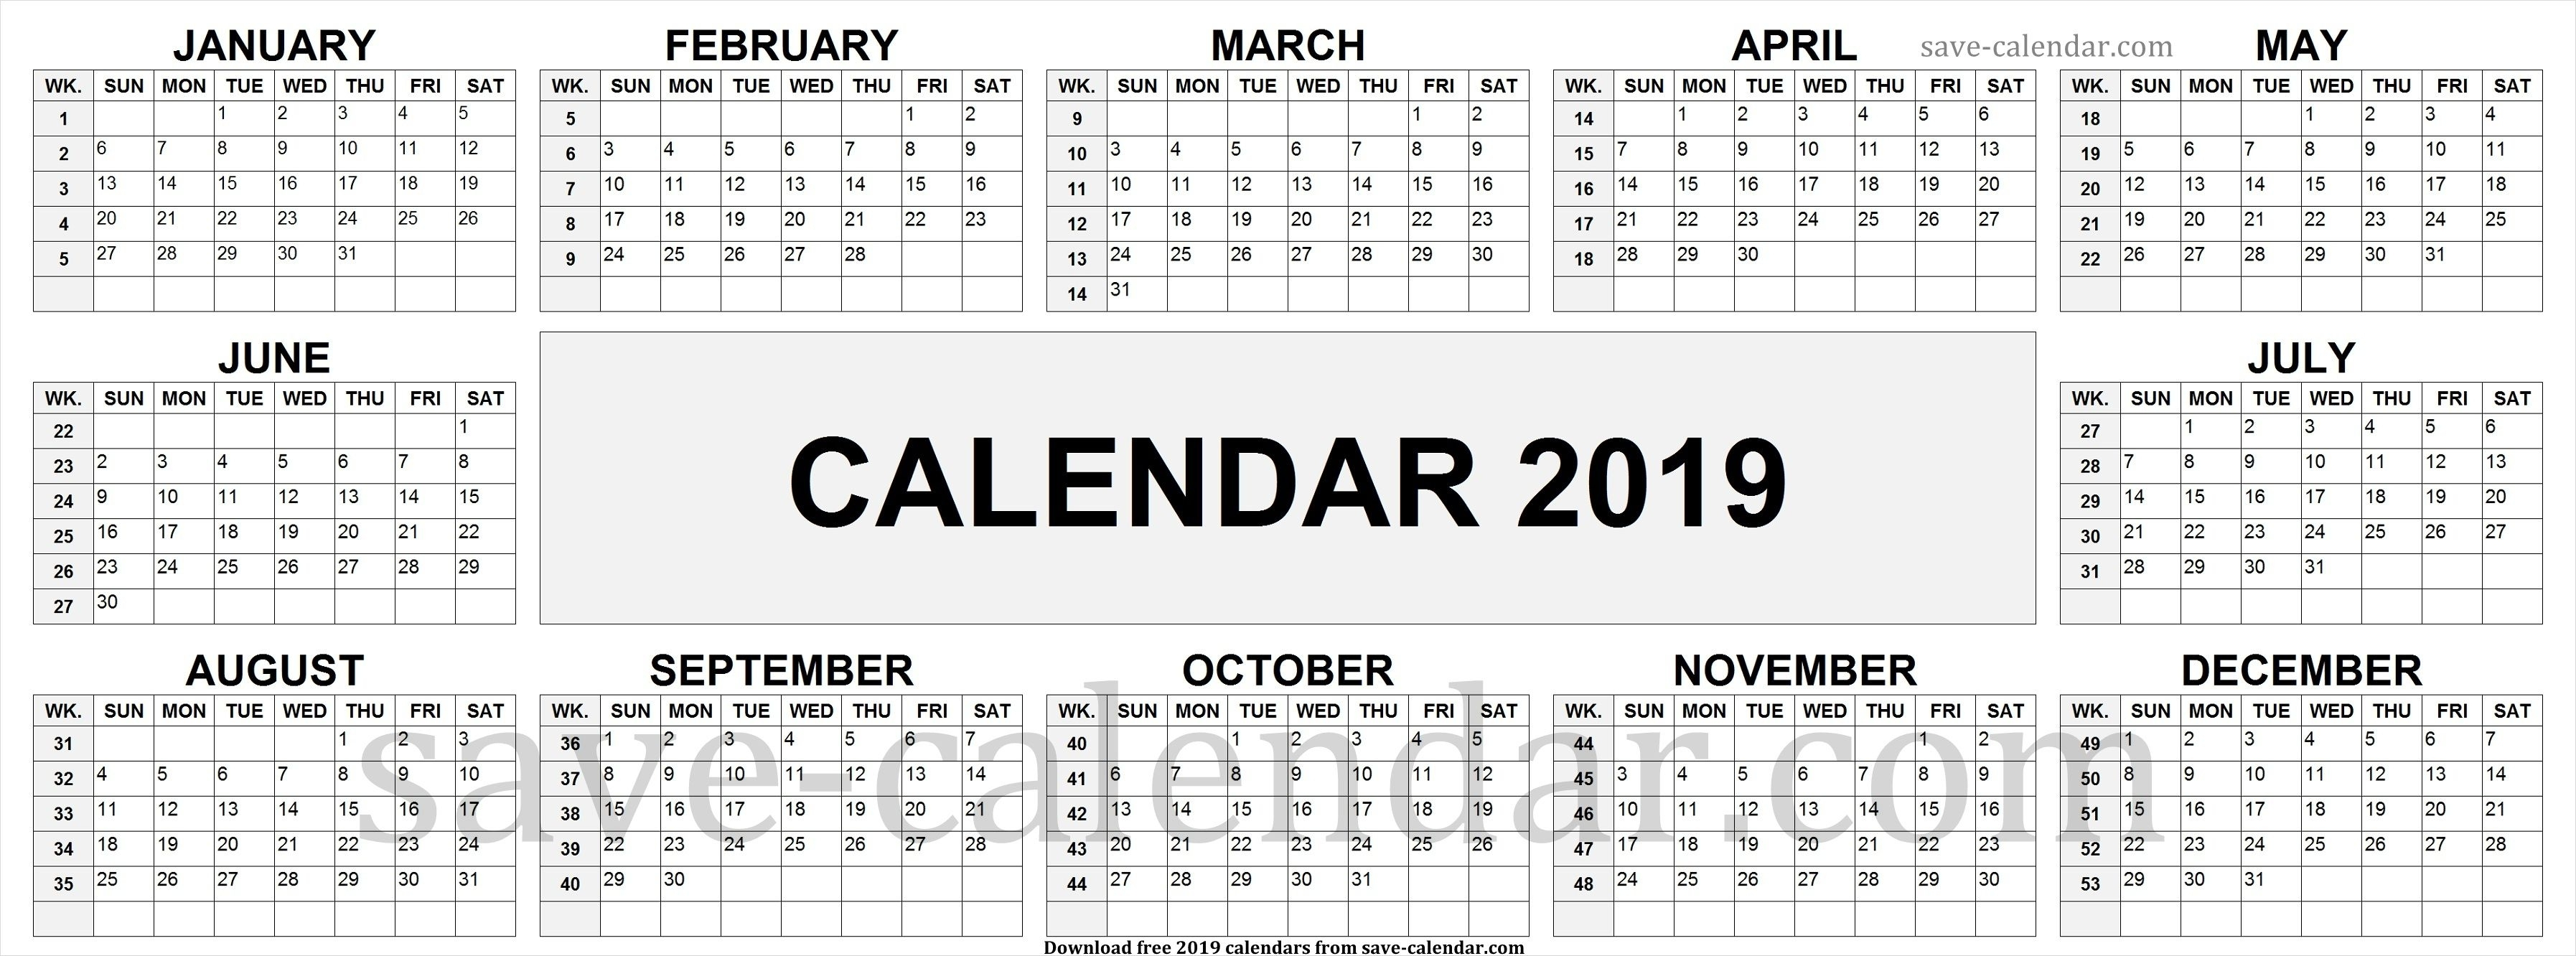 2019 Calendarweek Numbers | Week Number, 2019 Calendar